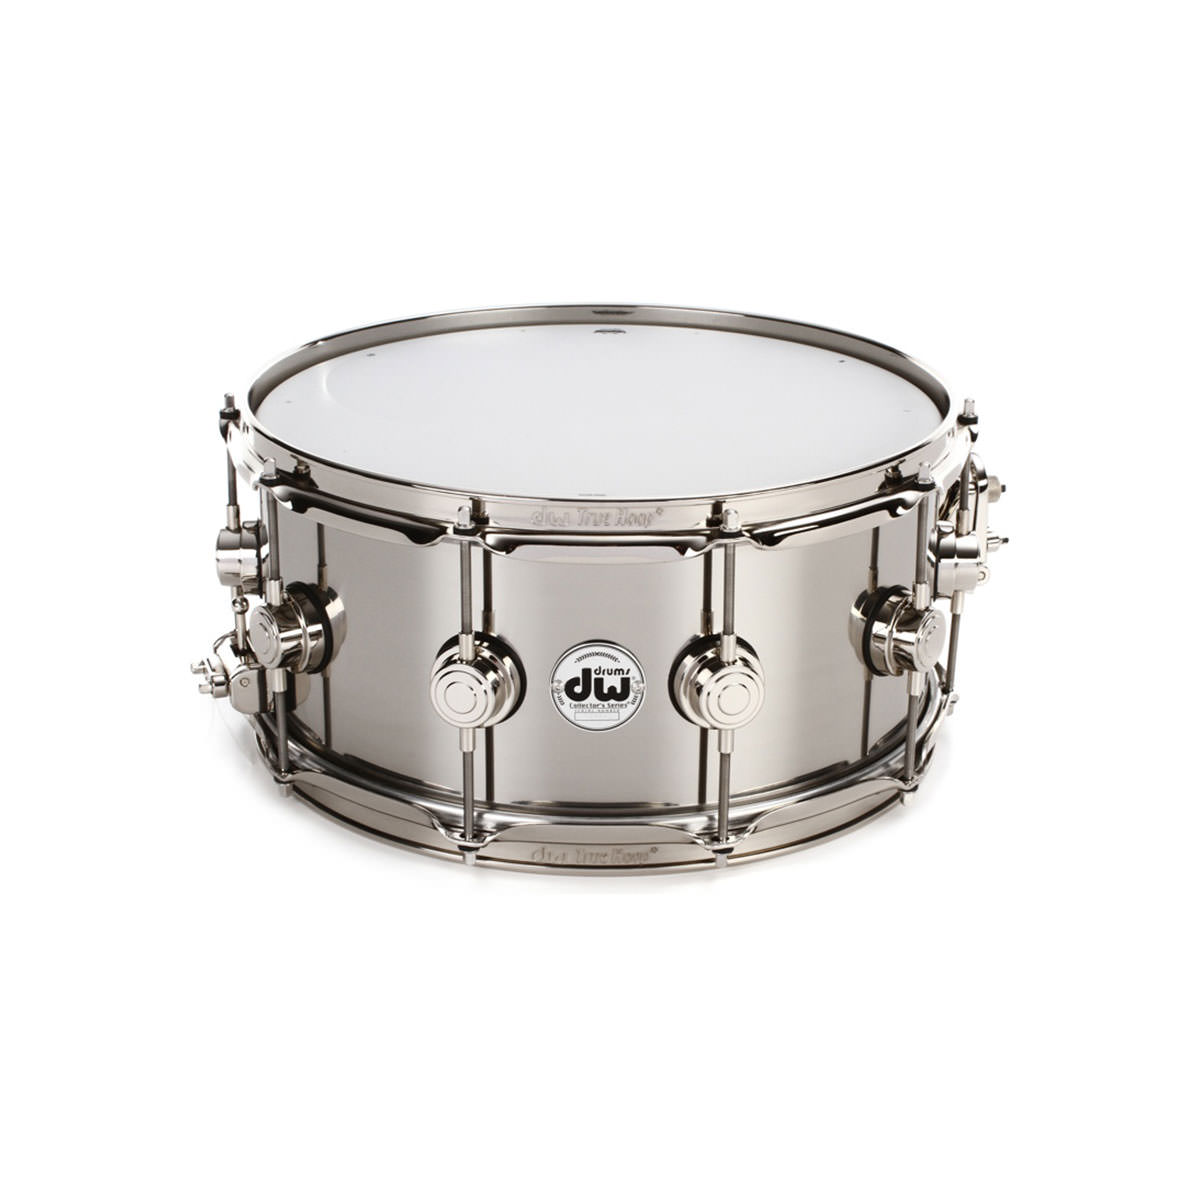 "DW 6.5""x14"" Collectors Snare Drum - Stainless Steel"